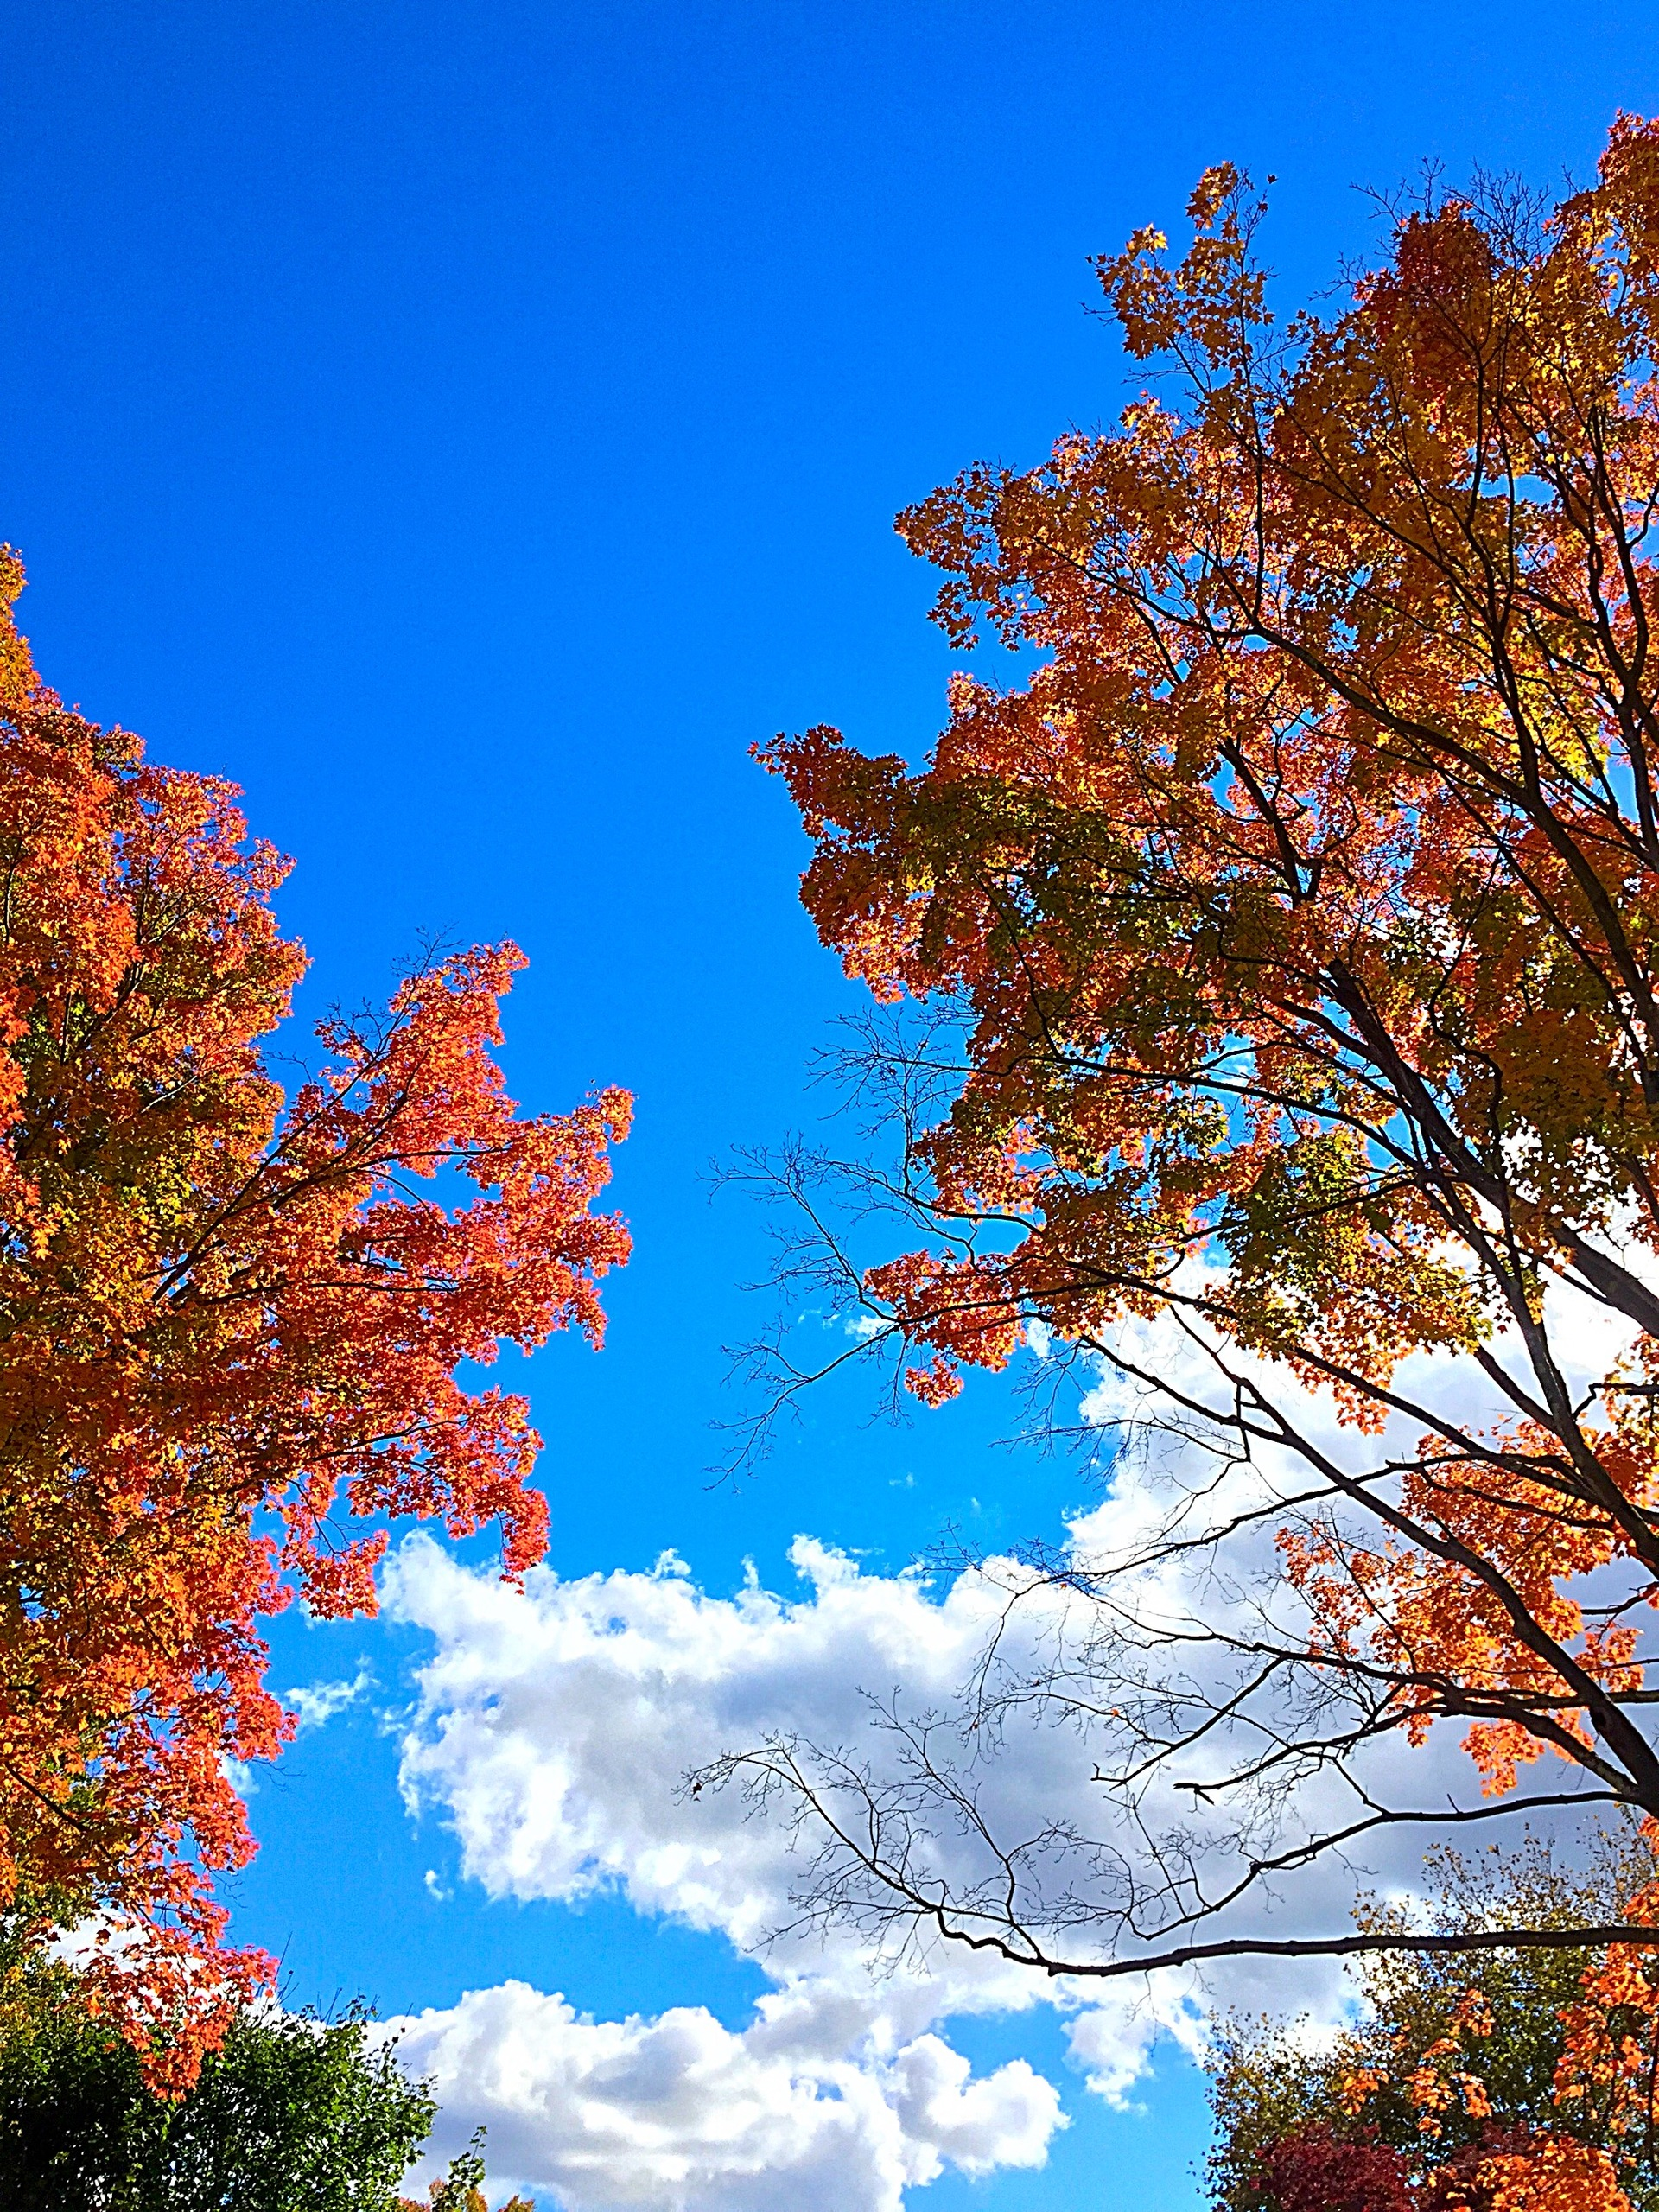 Low angle view of autumn trees against cloudy sky